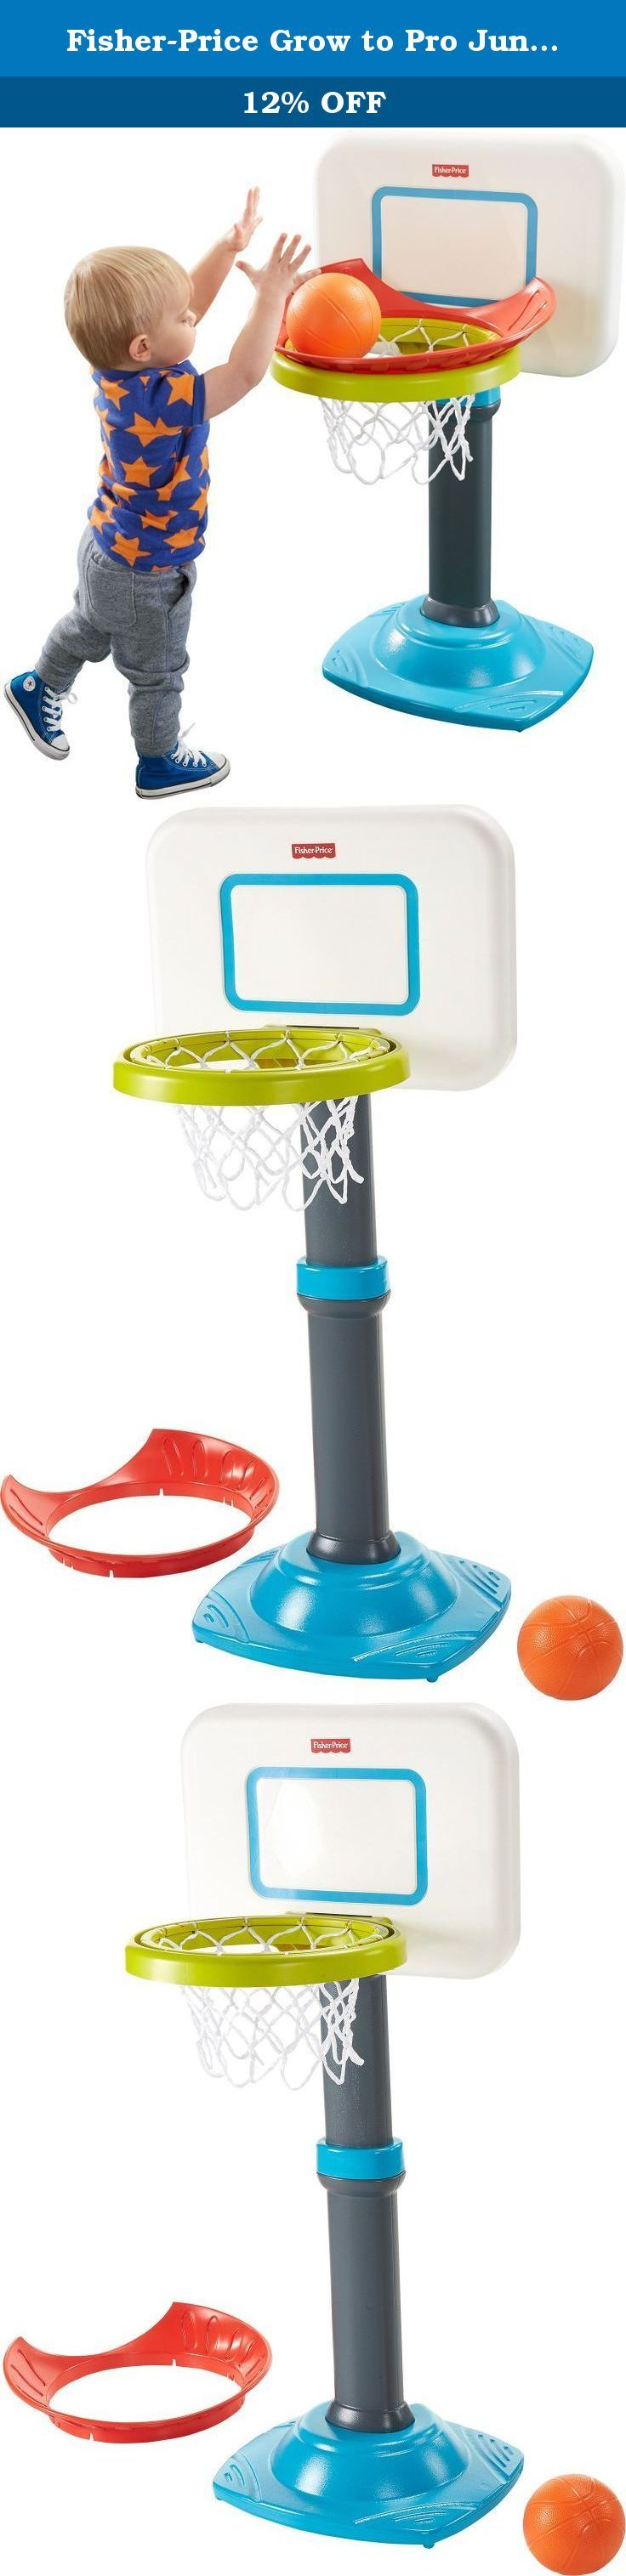 Fisher-Price Grow to Pro Junior Basketball. They shoot, they score! Toddlers start with the Sure Score rim, which does more than just guide the ball into the basket, it helps build their confidence! When kids are ready for more of a challenge, just remove the special rim. Four height positions make this basketball set a real slam dunk - it grows with little b-ballers and their shooting skills!.